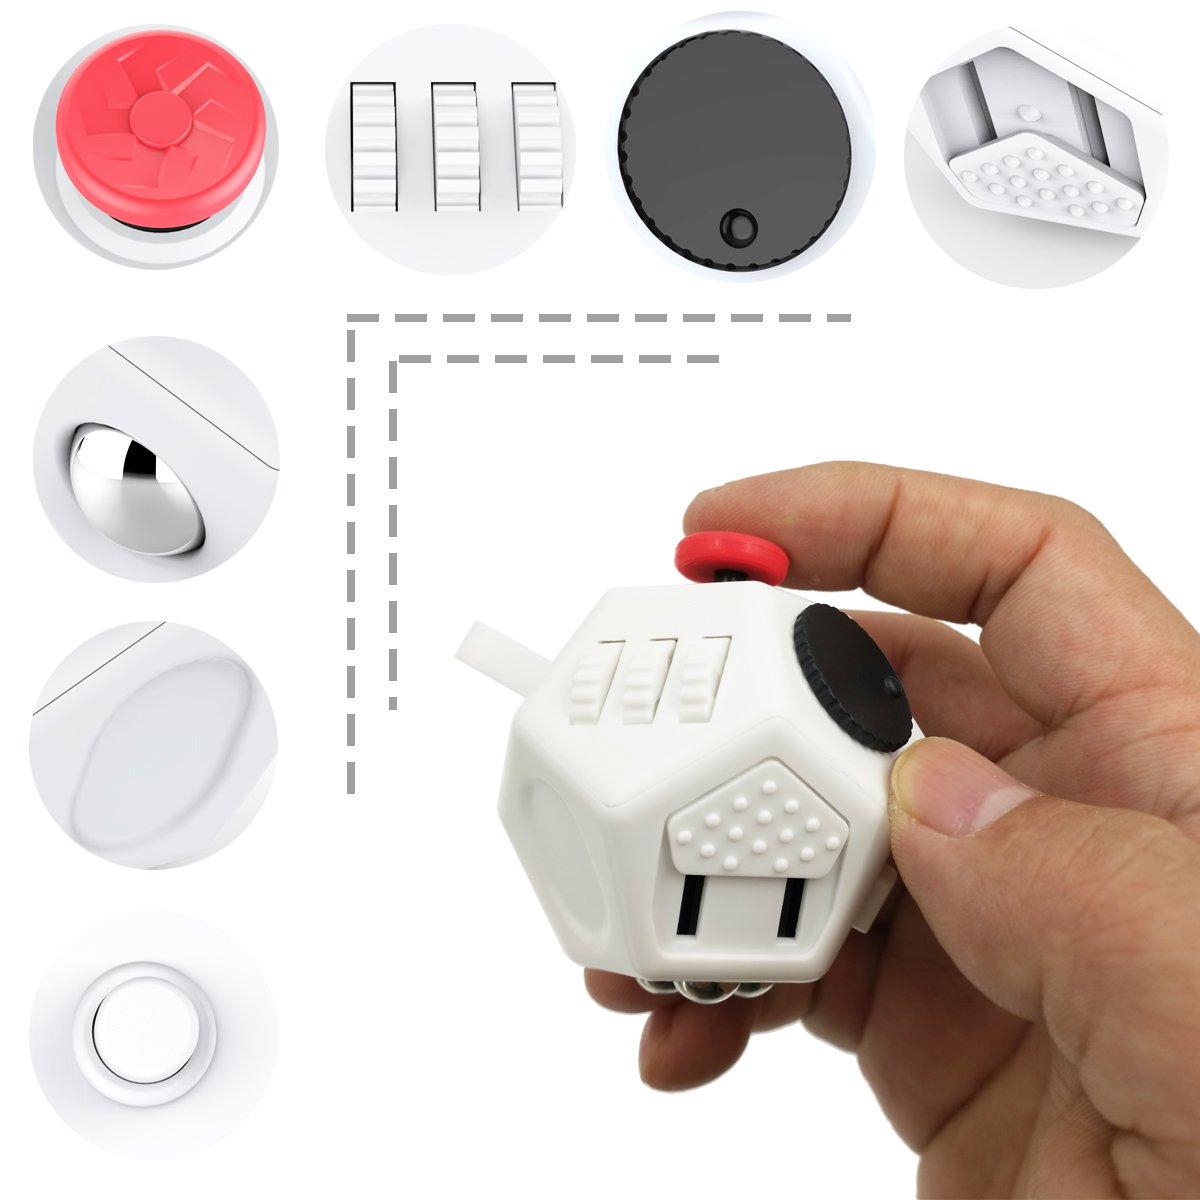 Minilopa Fidget Dodecagon -12 Side Fidget Toy Cube Relieves Stress and Anxiety Anti Depression Cube for Children and Adults with ADHD ADD OCD Autism (E2 Small White) by Minilopa (Image #5)